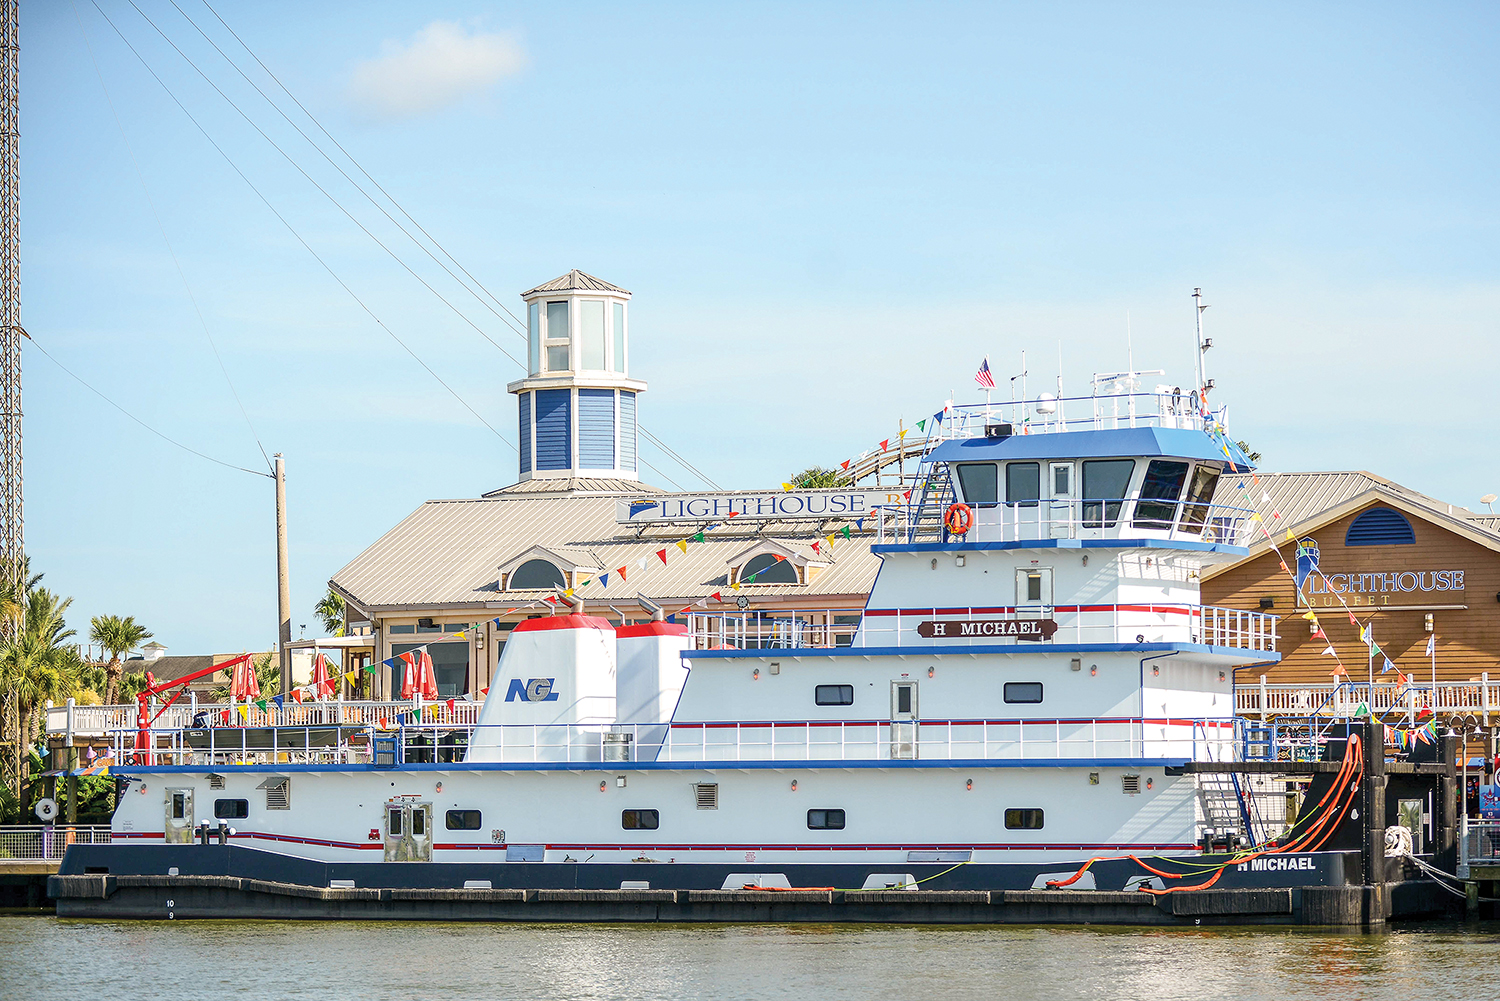 NGL Marine Takes Delivery Of 3,200 Hp. Towboat